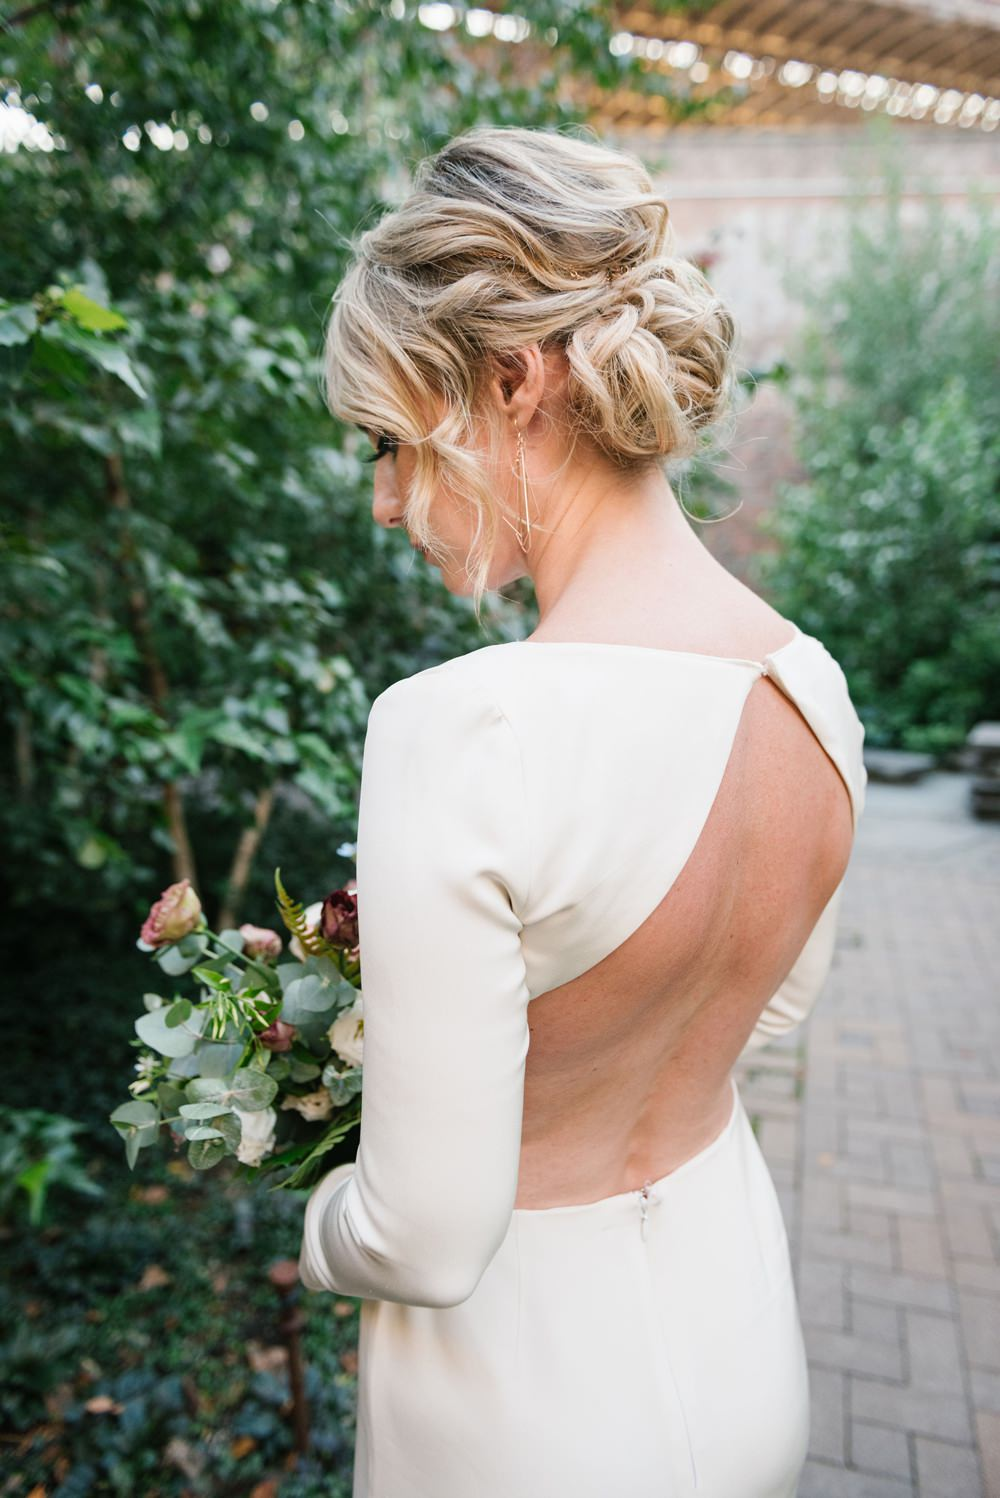 Hair Style Up Do Chignon Dress Gown Bride Bridal Backless Long Sleeves Brooklyn Elopement Everly Studios